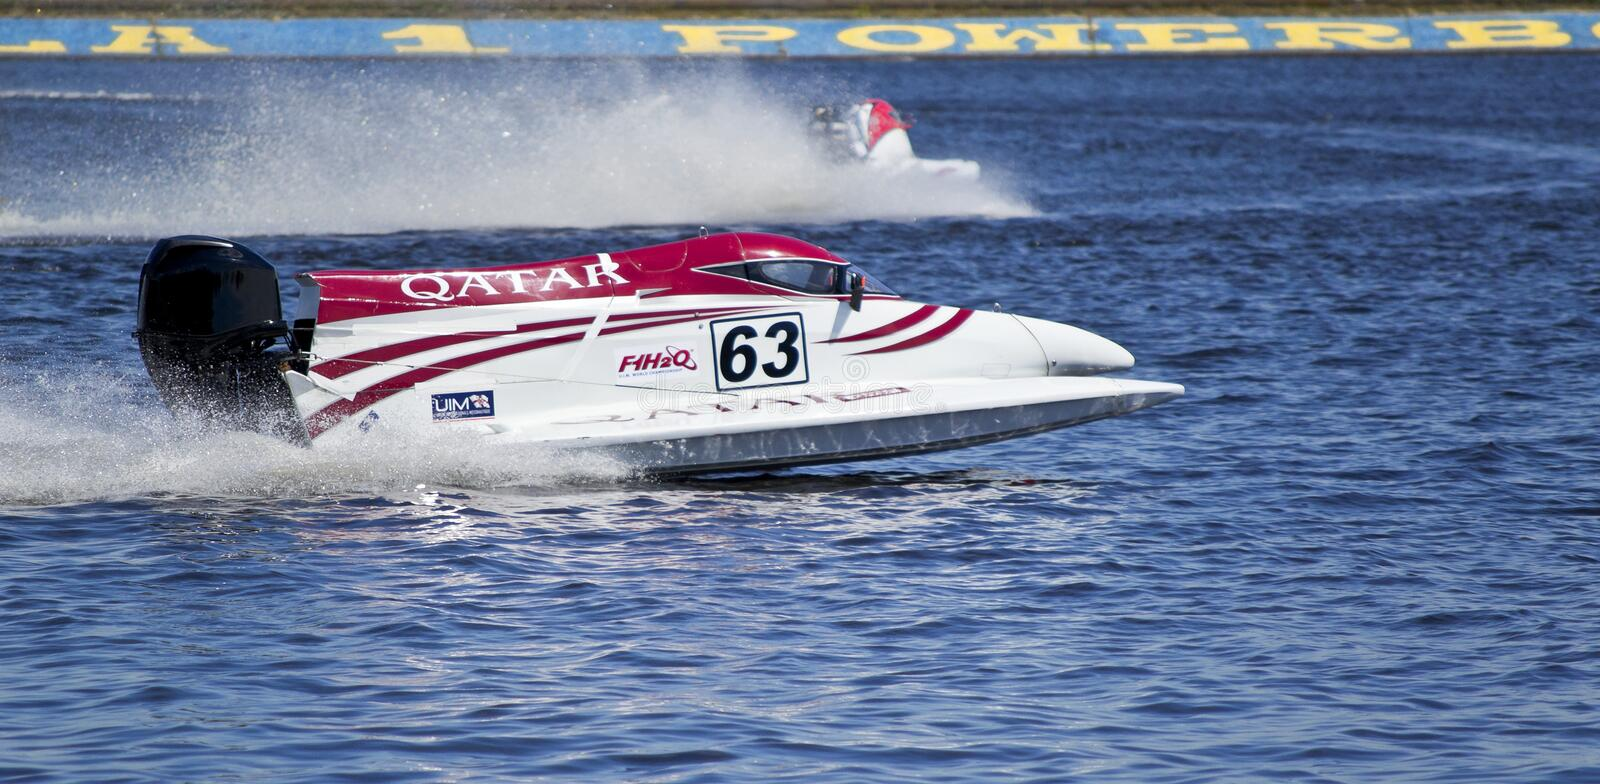 F1H2O UIM World Championship for power boating